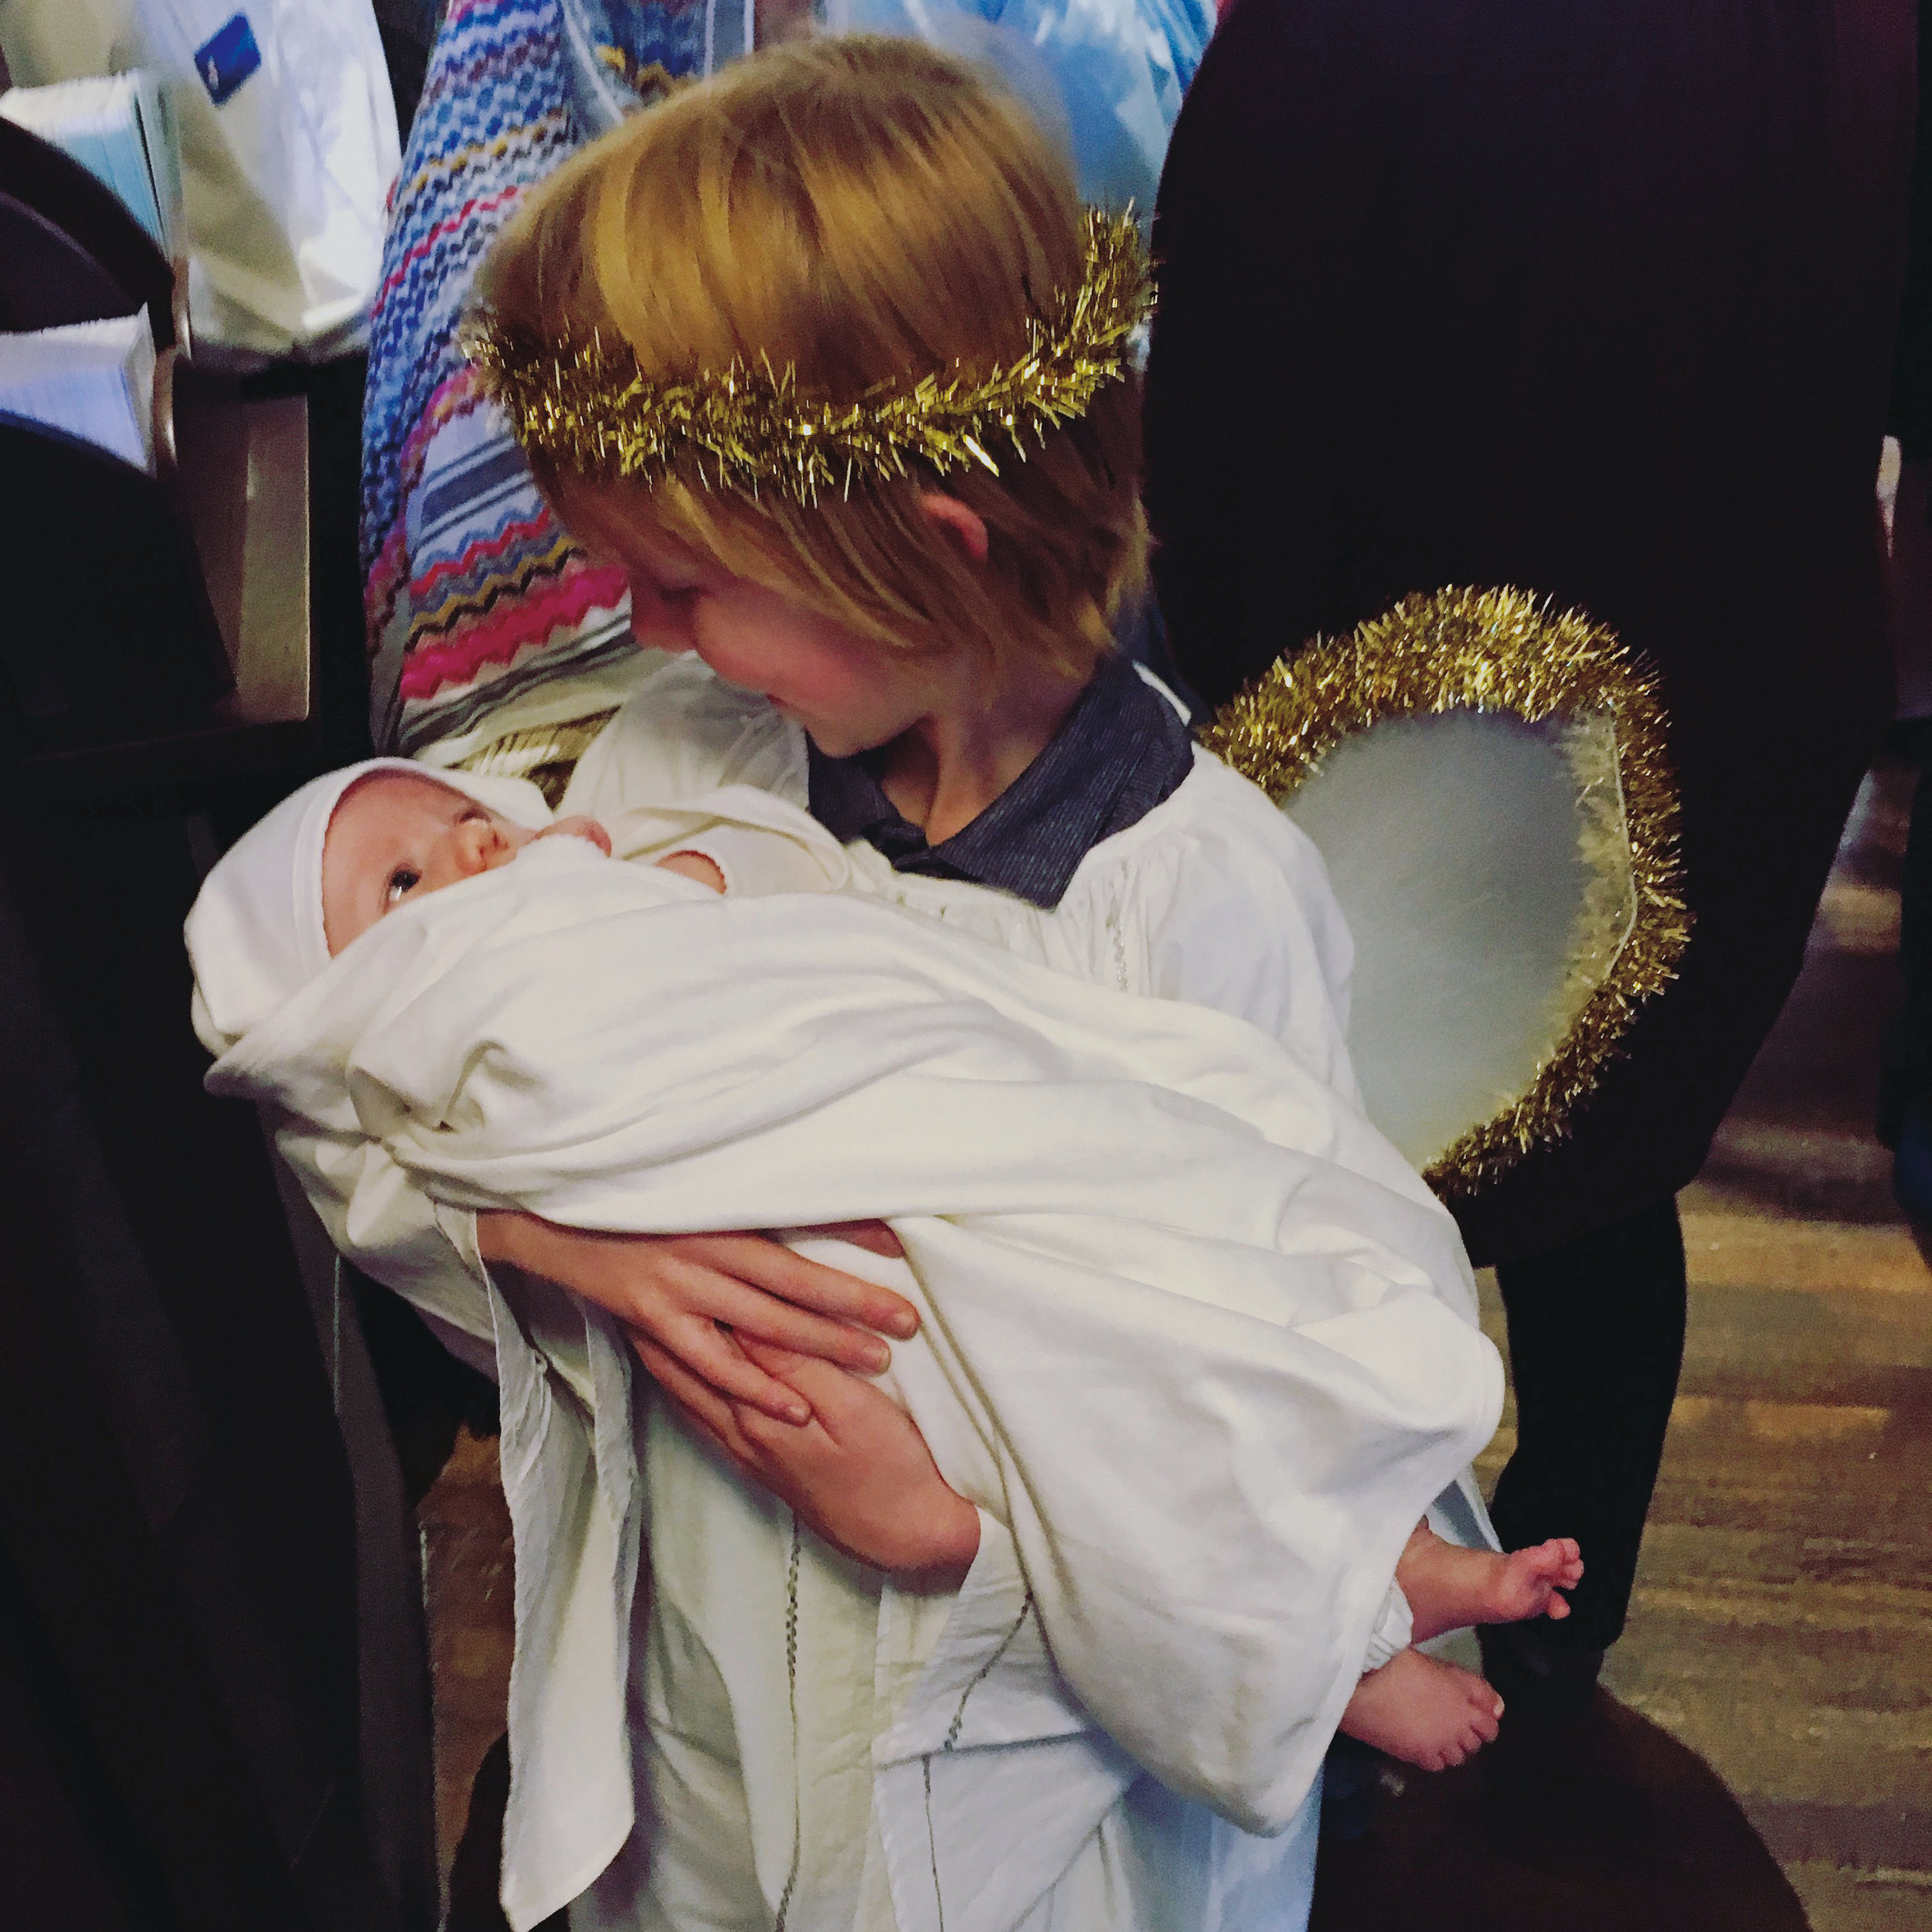 Andrew Stehli Howell (baby Jesus), son of Sarah (Stehli) Howell '97, with his older brother, Lucius.